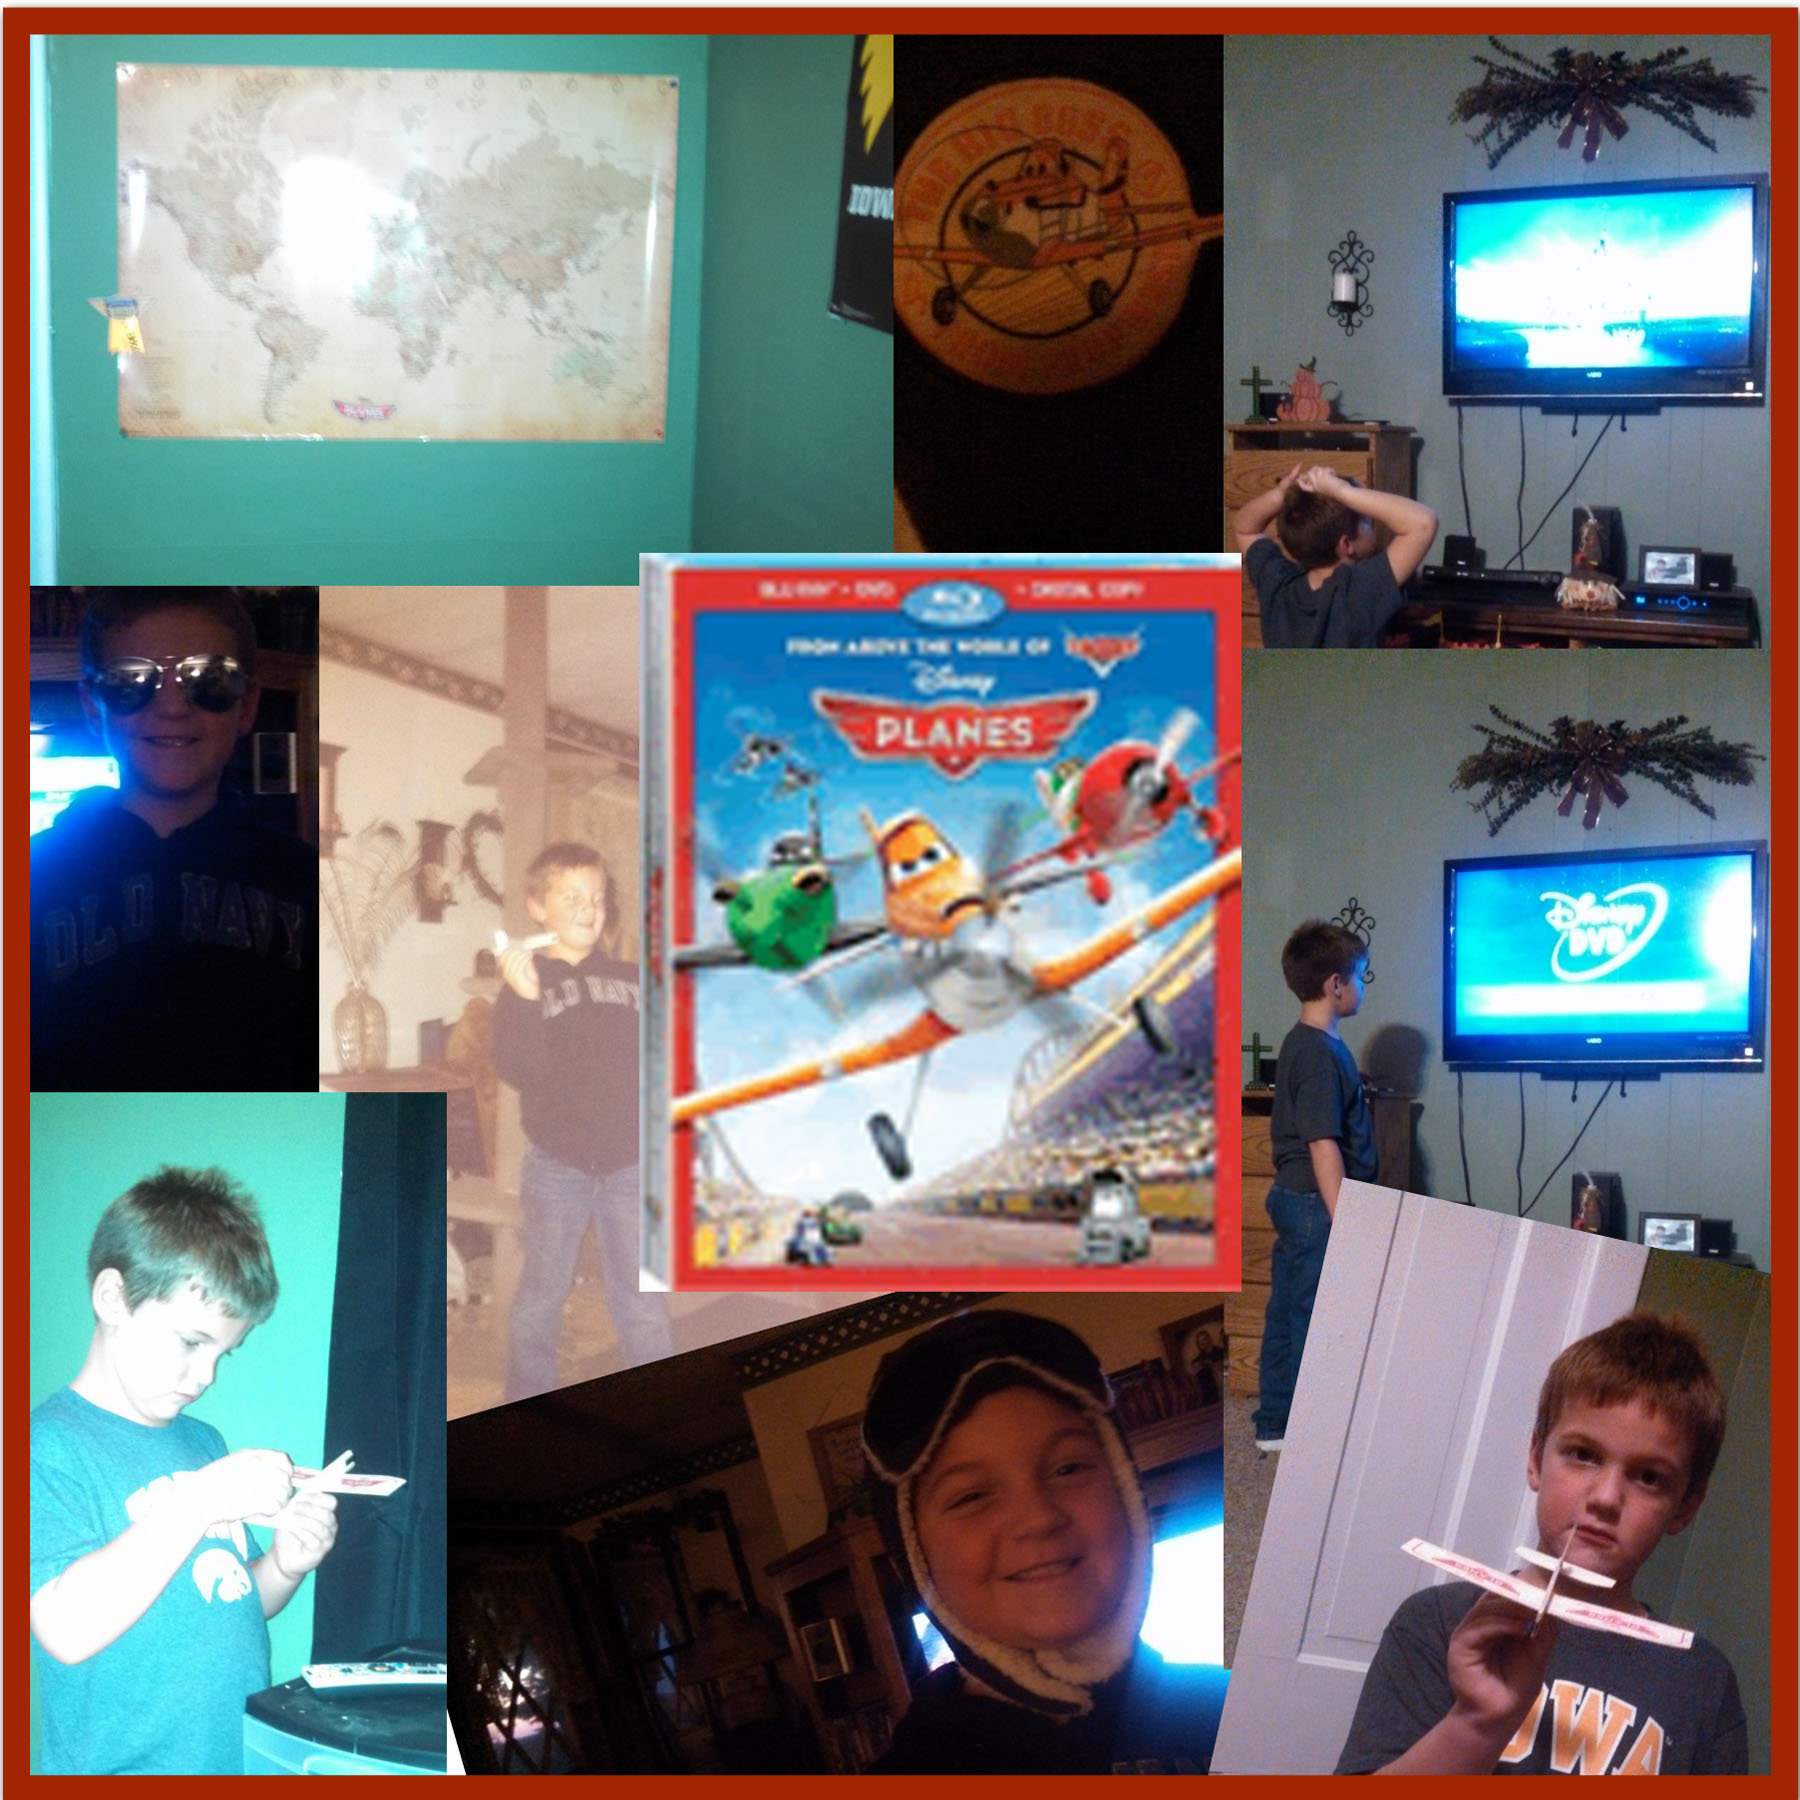 Planes review releases on Blu-ray Combo Pack on November 19th!